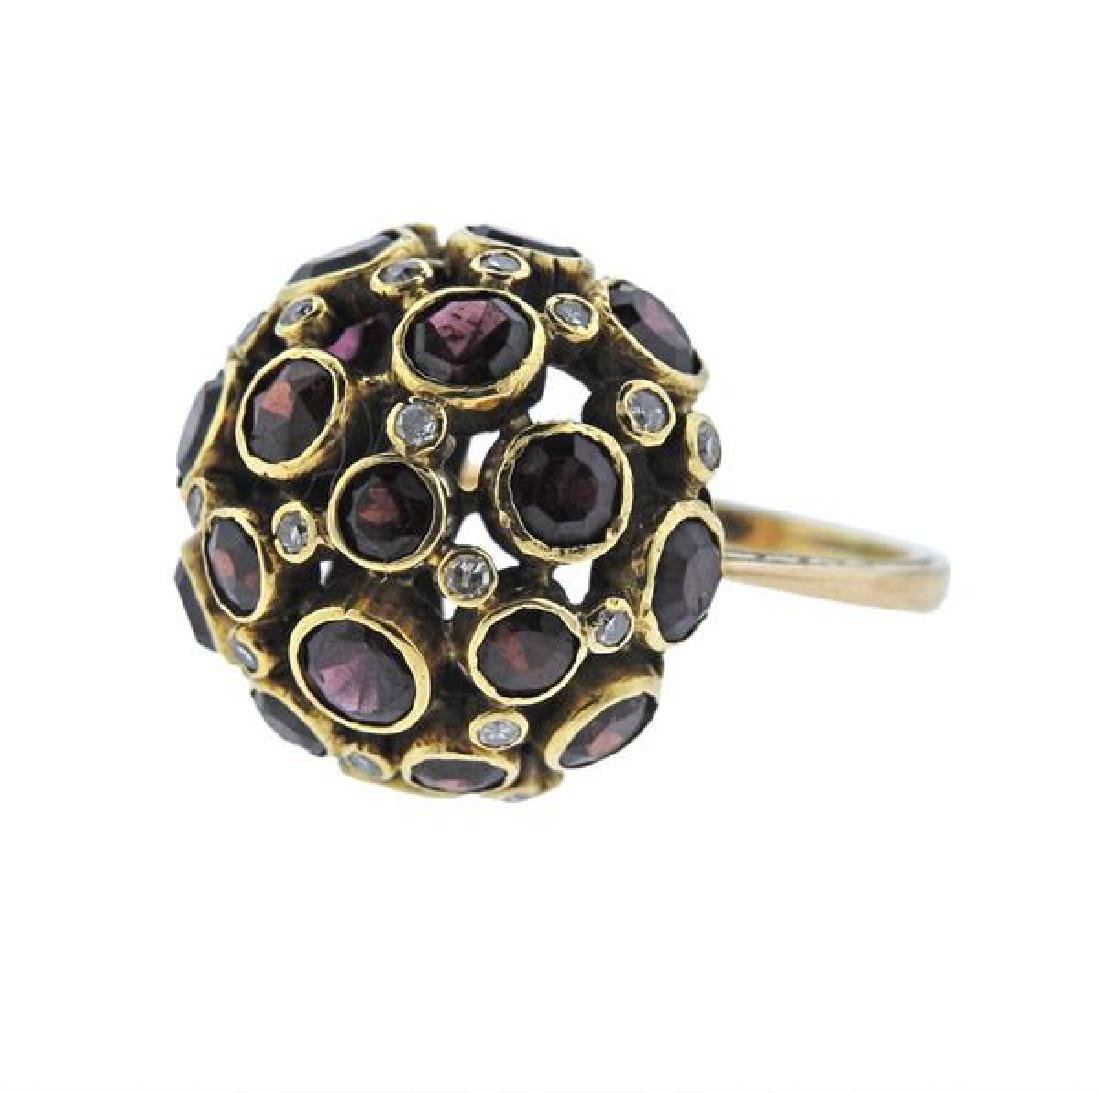 18K Gold Diamond Garnet Dome Ring - 2